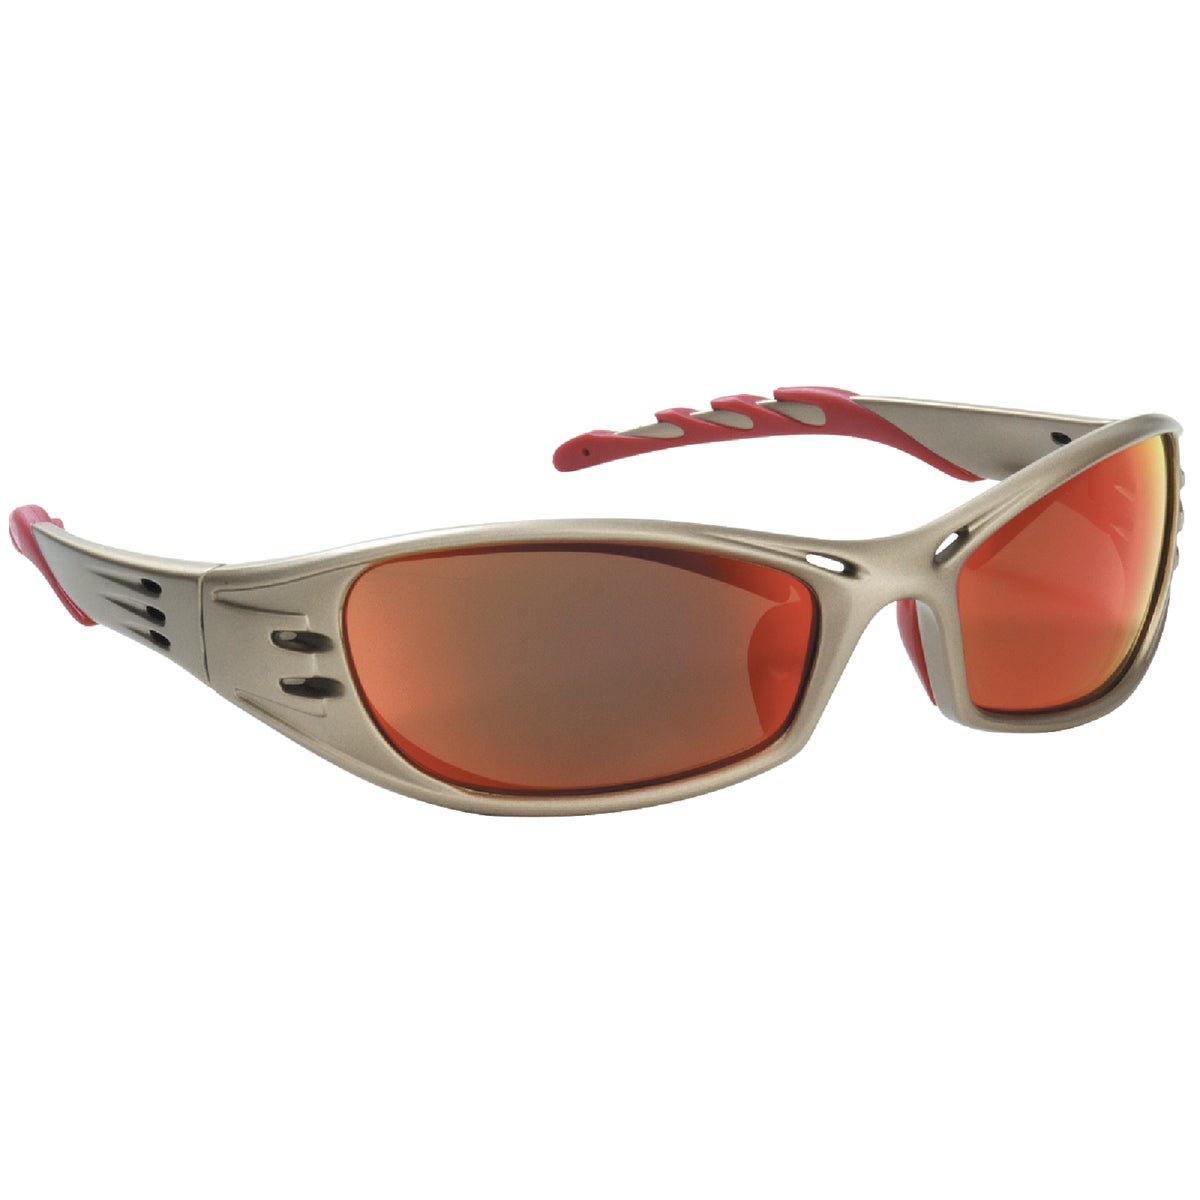 RED SAFETY SUNGLASSES - 90987-80025 by 3m Co